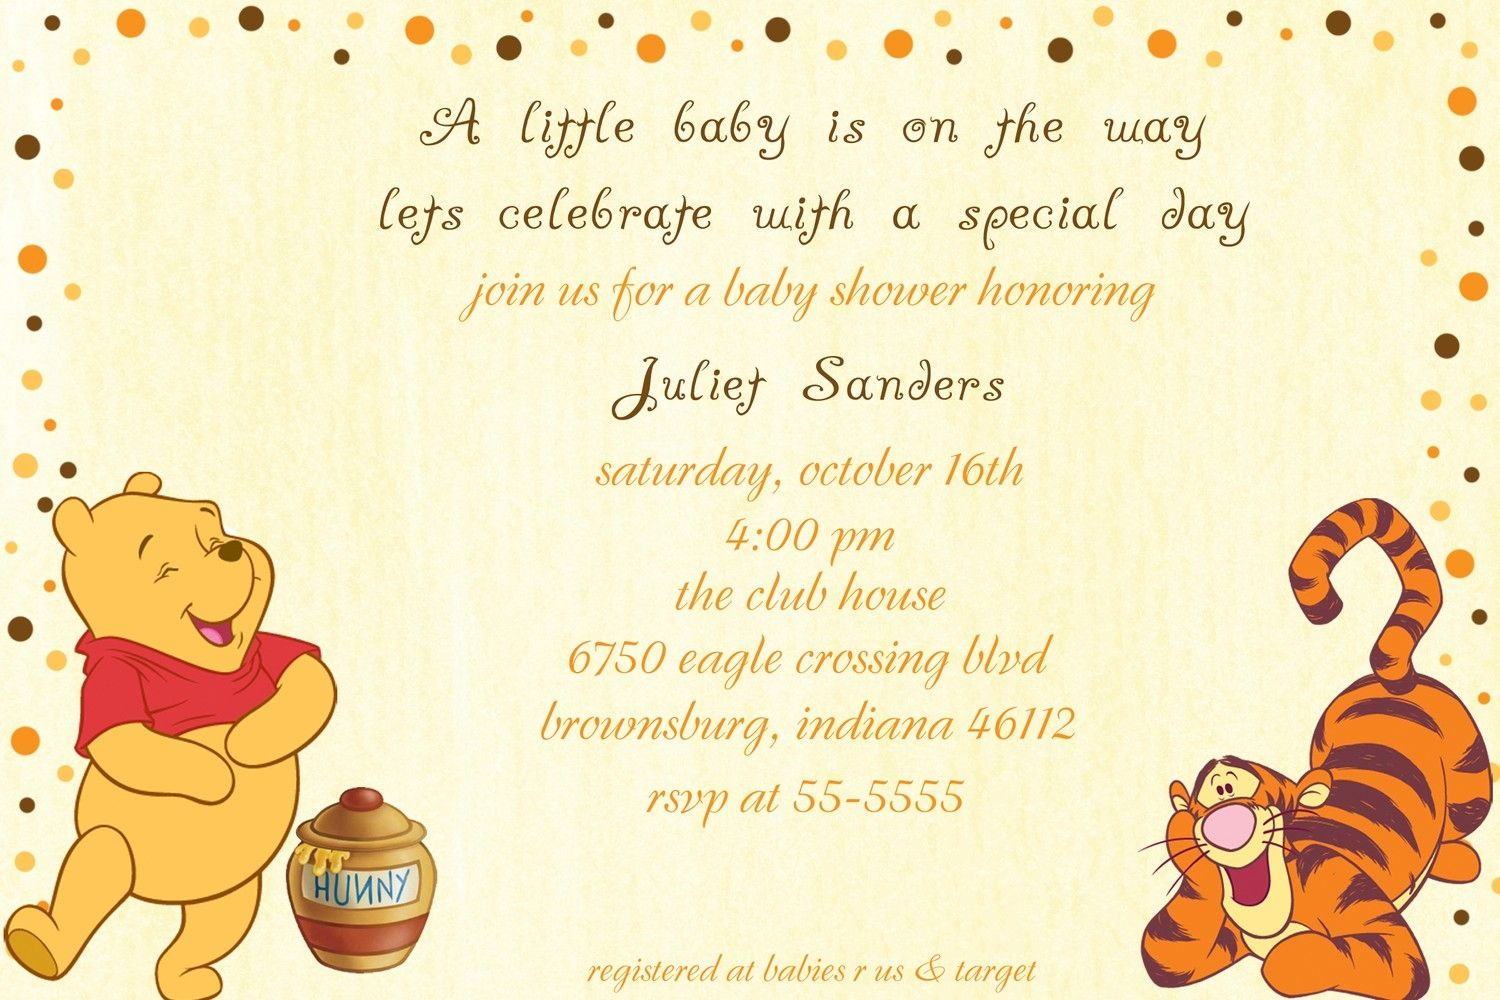 Classic Winnie The Pooh Baby Shower Invitation Templates Http